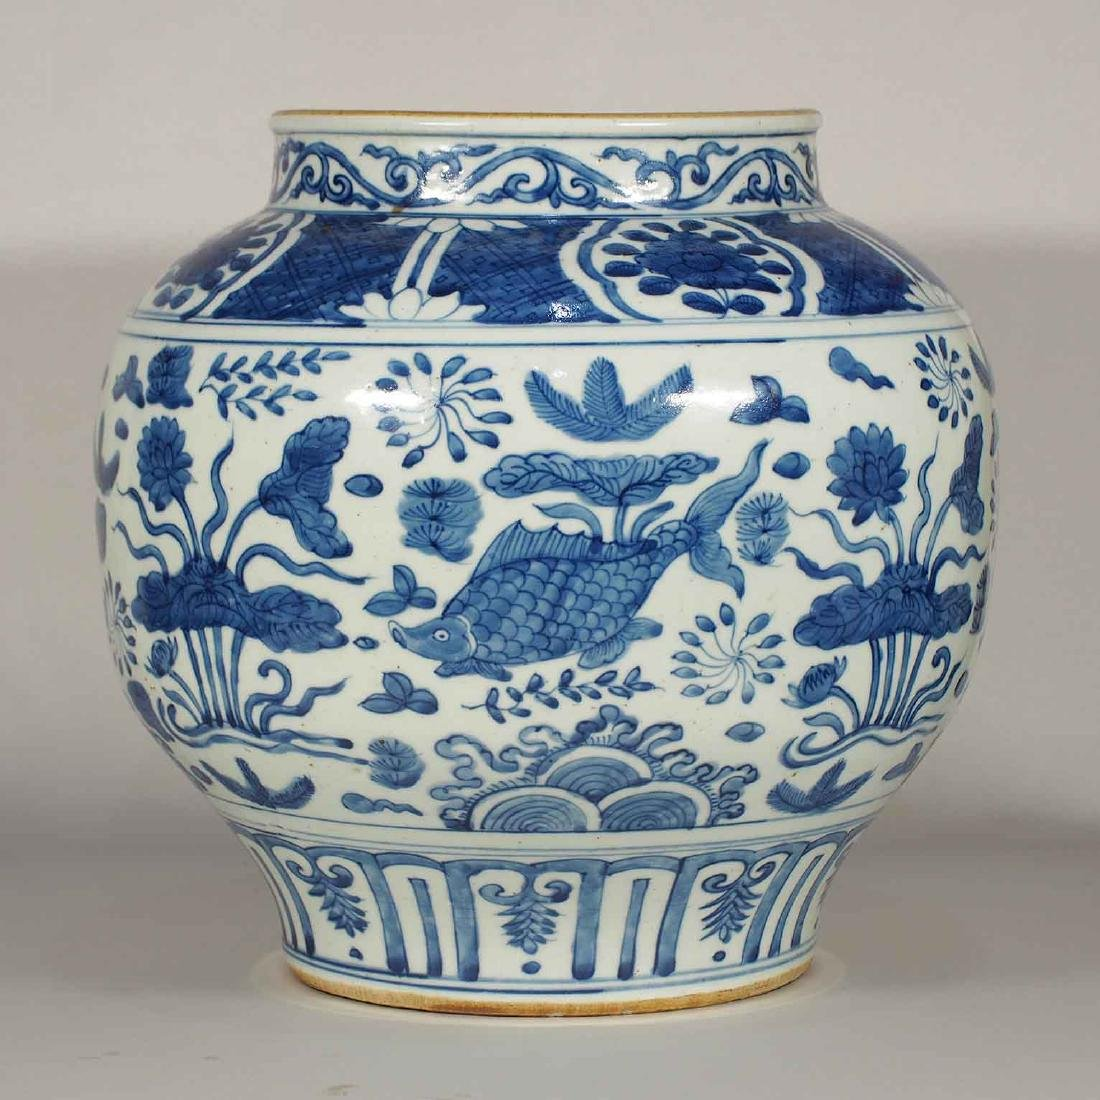 Jar with Fishes in a Pond Design, Wanli, Ming Dynasty